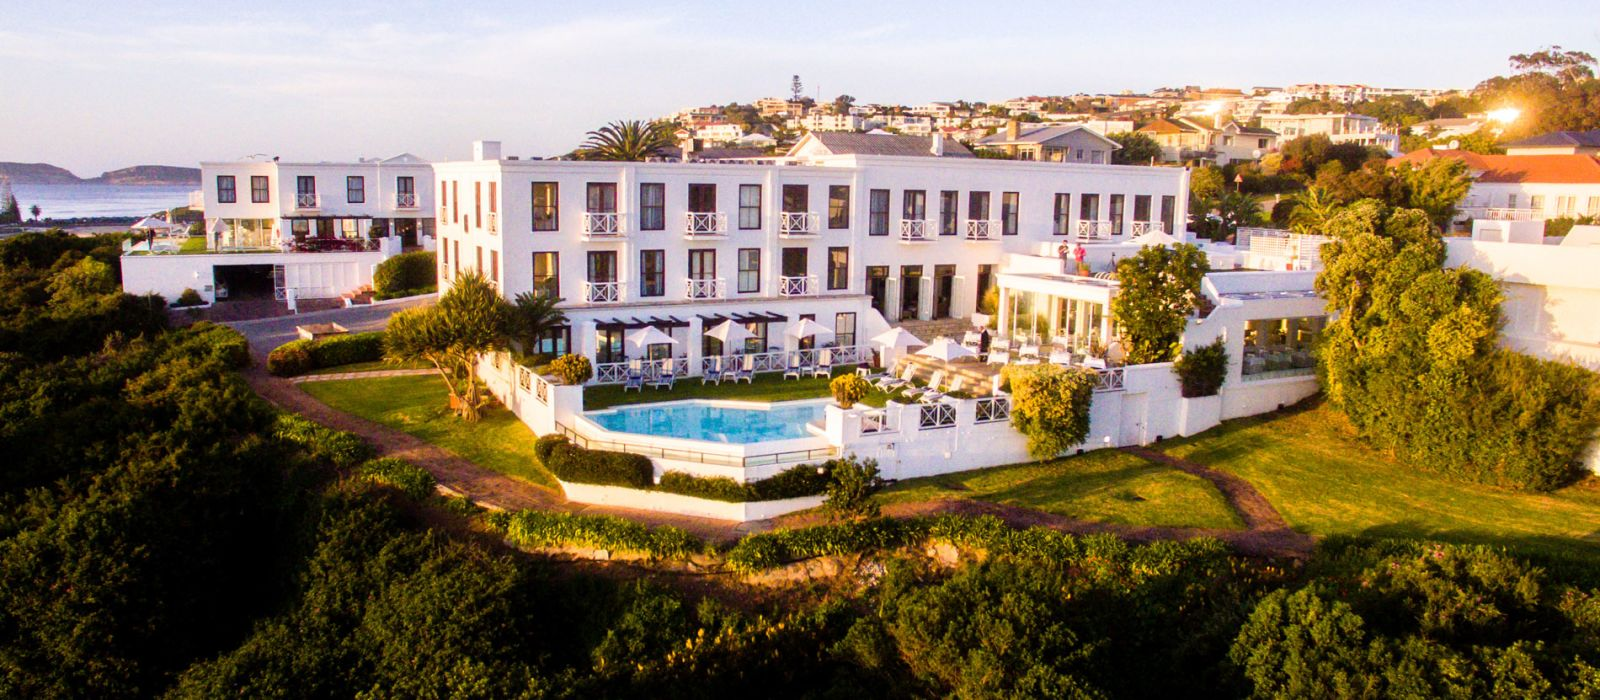 Hotel The Plettenberg  South Africa